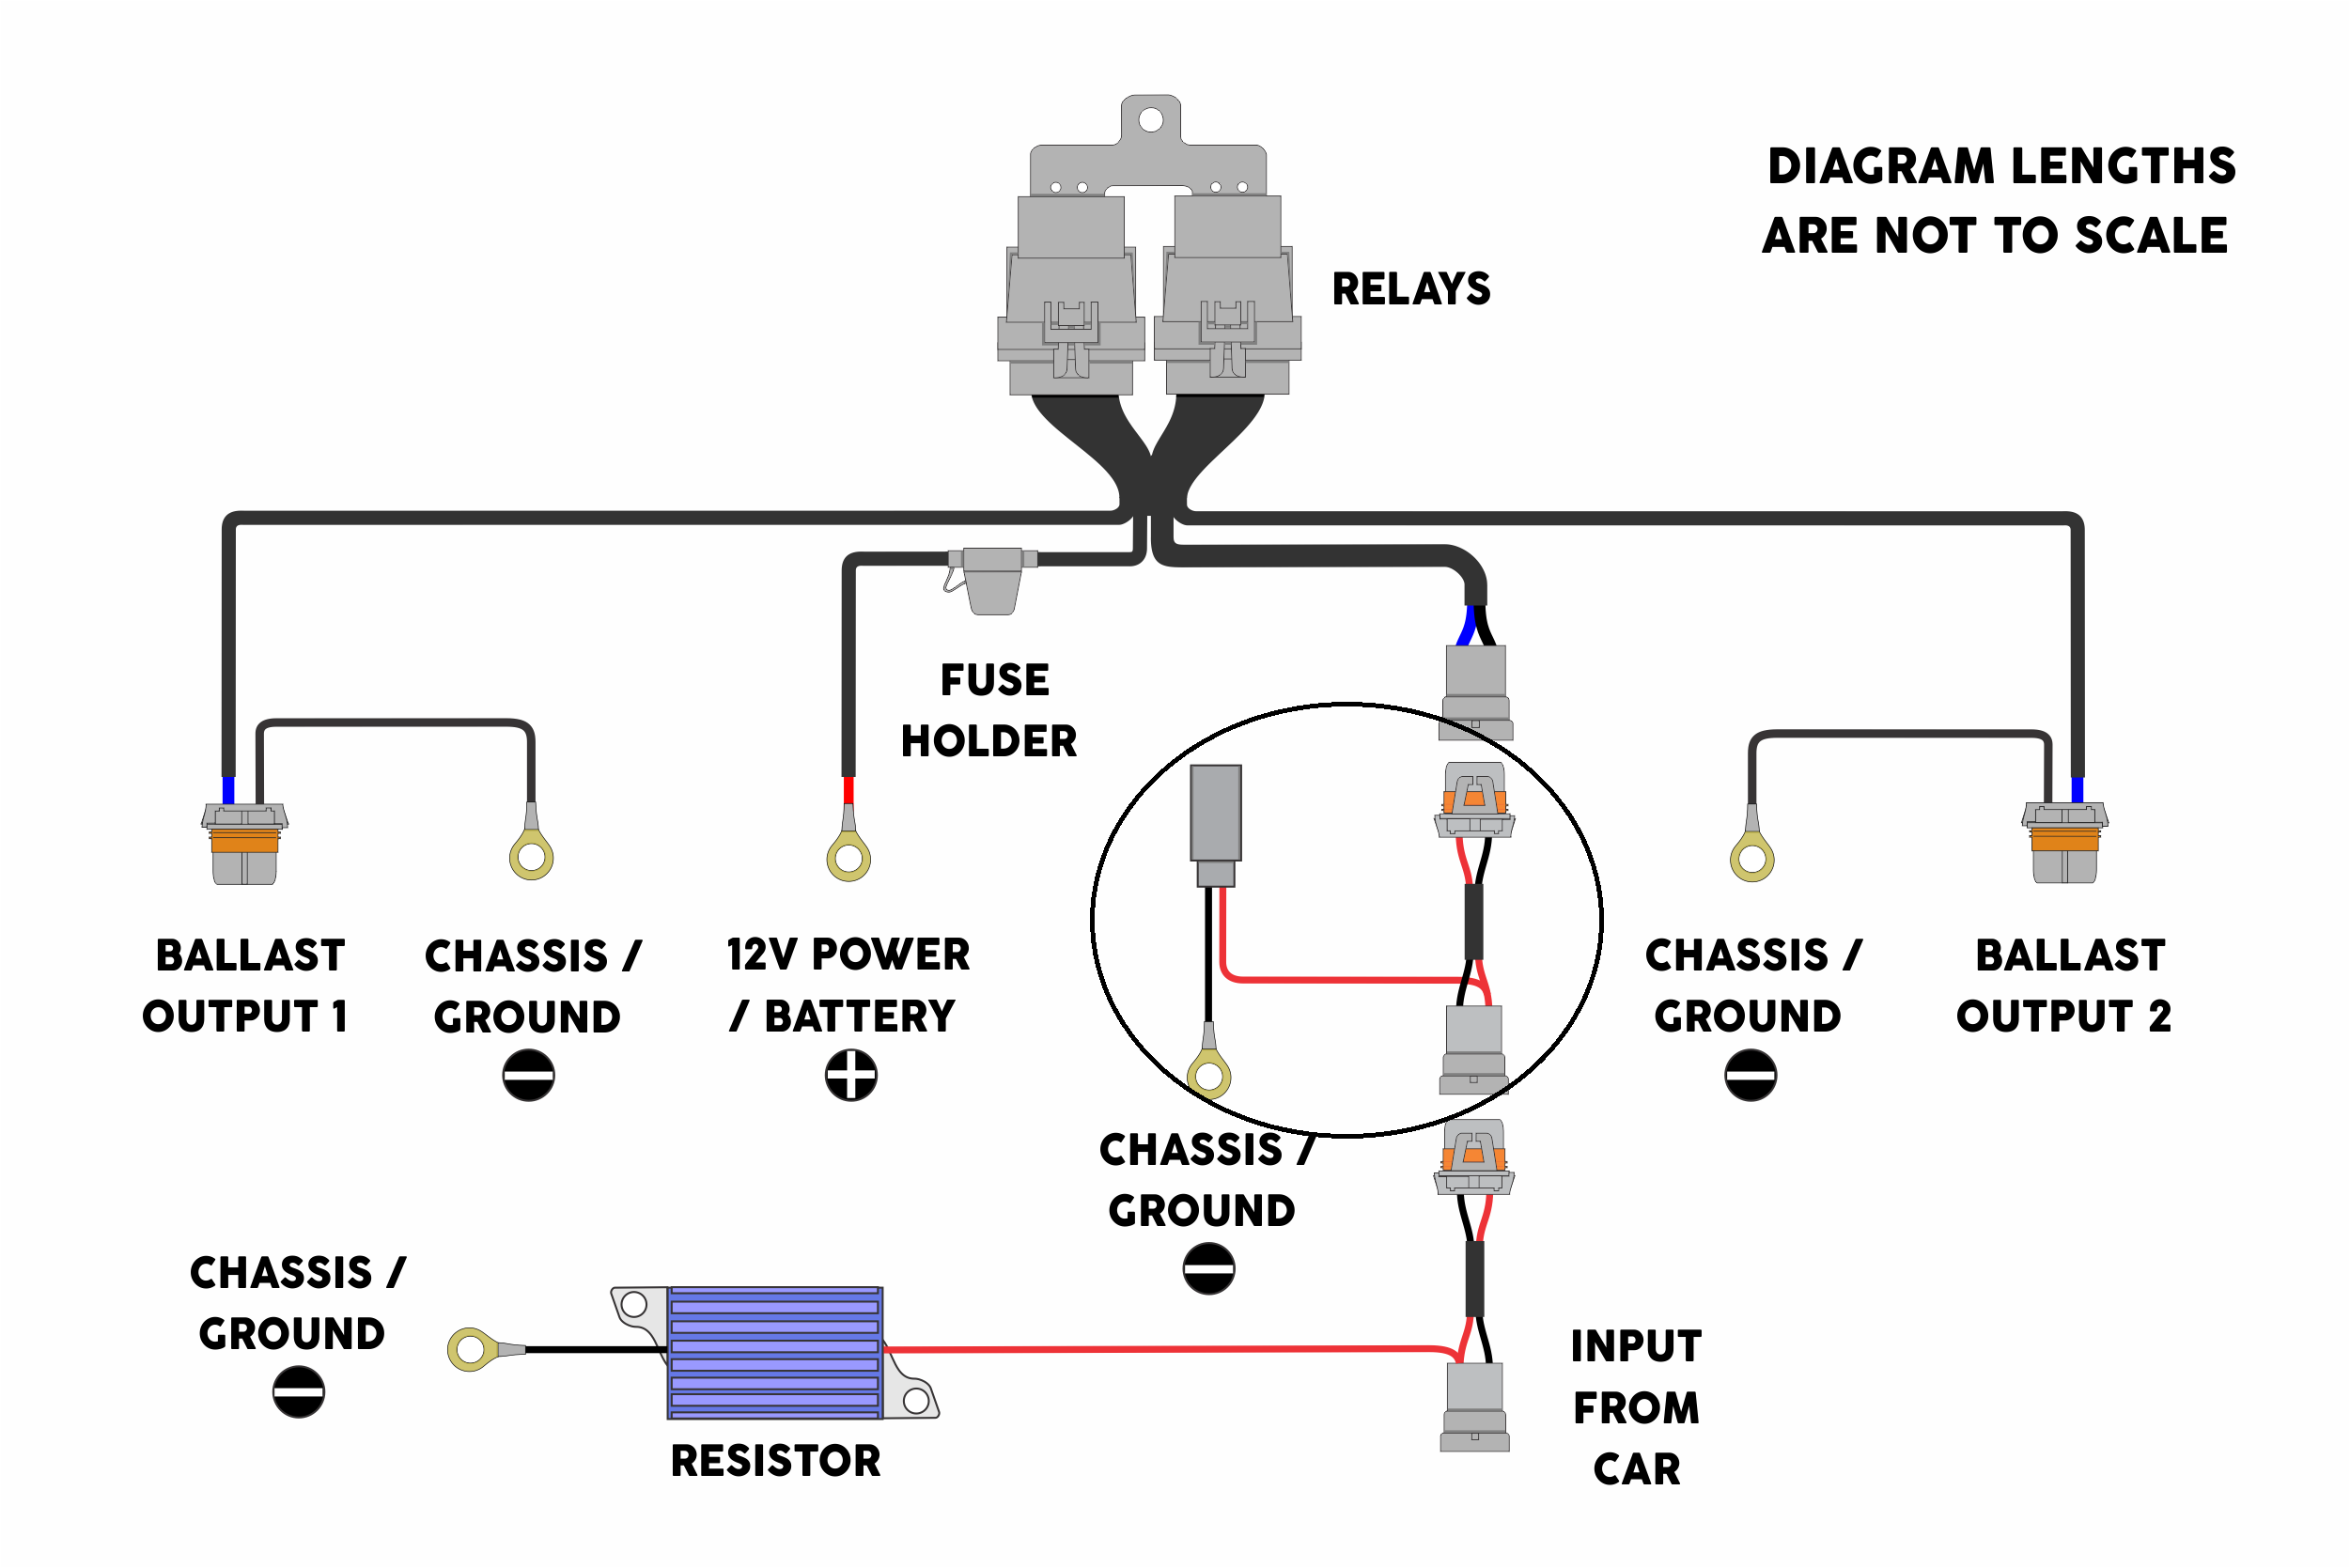 Bikemaster H4 Hid Kit Wiring Diagram Electrical Diagrams 2003 Maxima Free Download Dodge Xenon